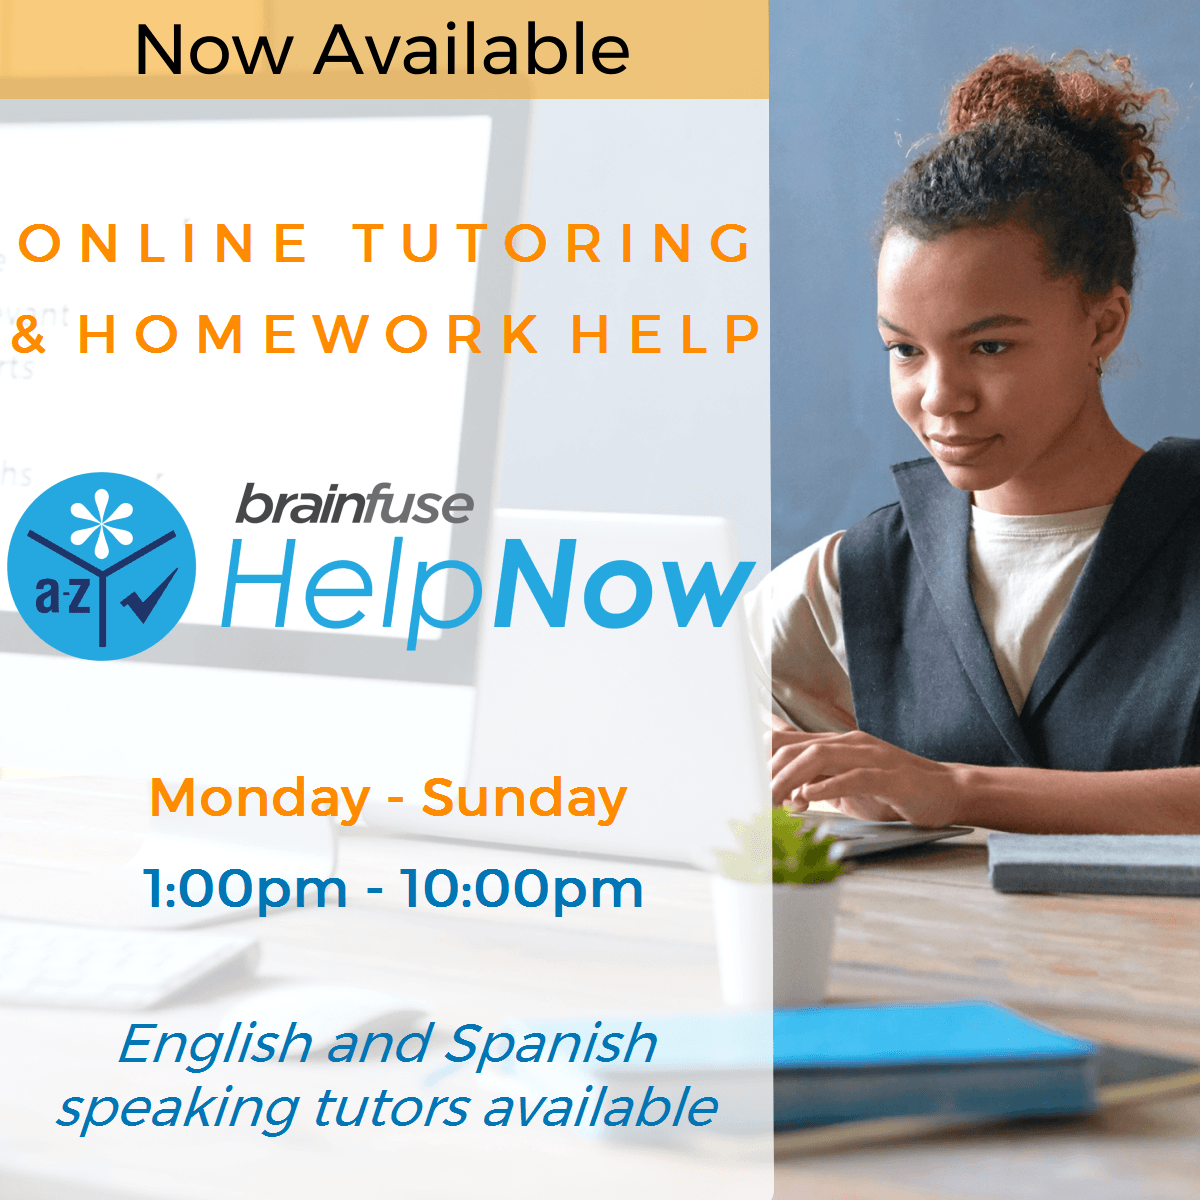 free online tutoring and homework help available through brainfuse help now service